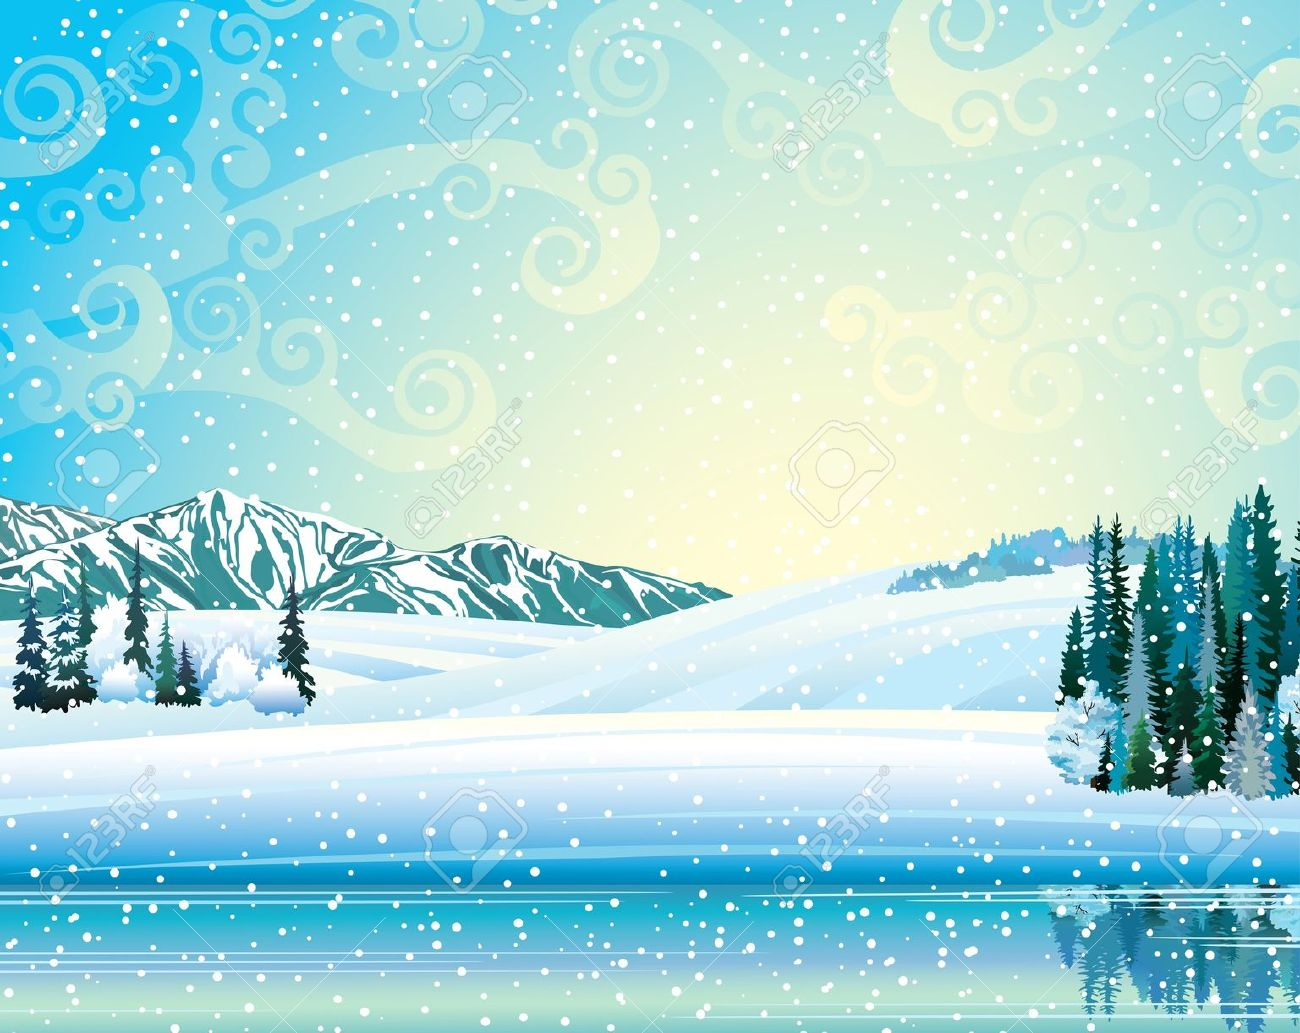 Frozen lake clipart.